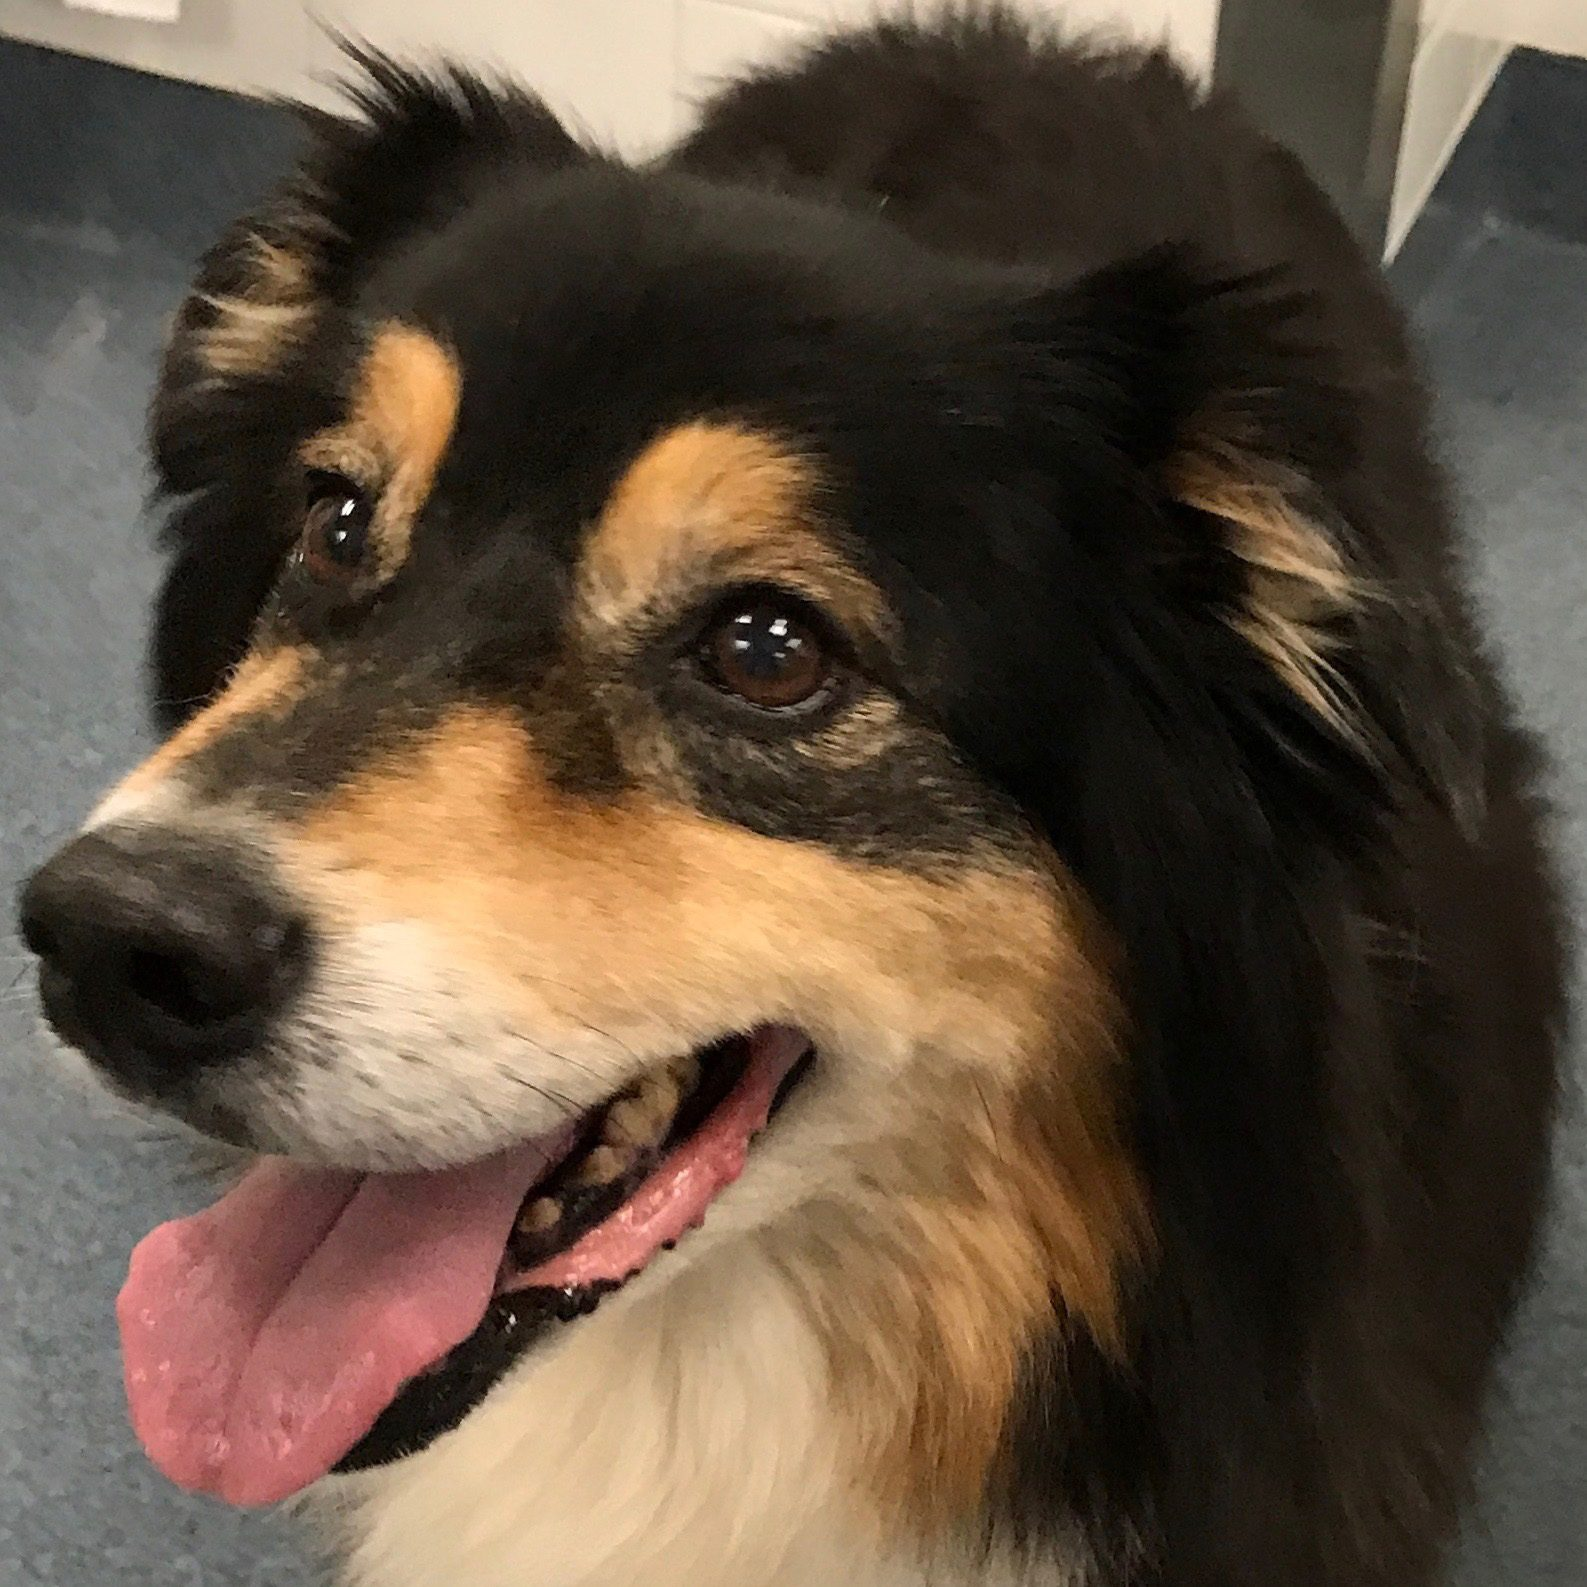 A dog with advanced heart disease that is still looking very happy